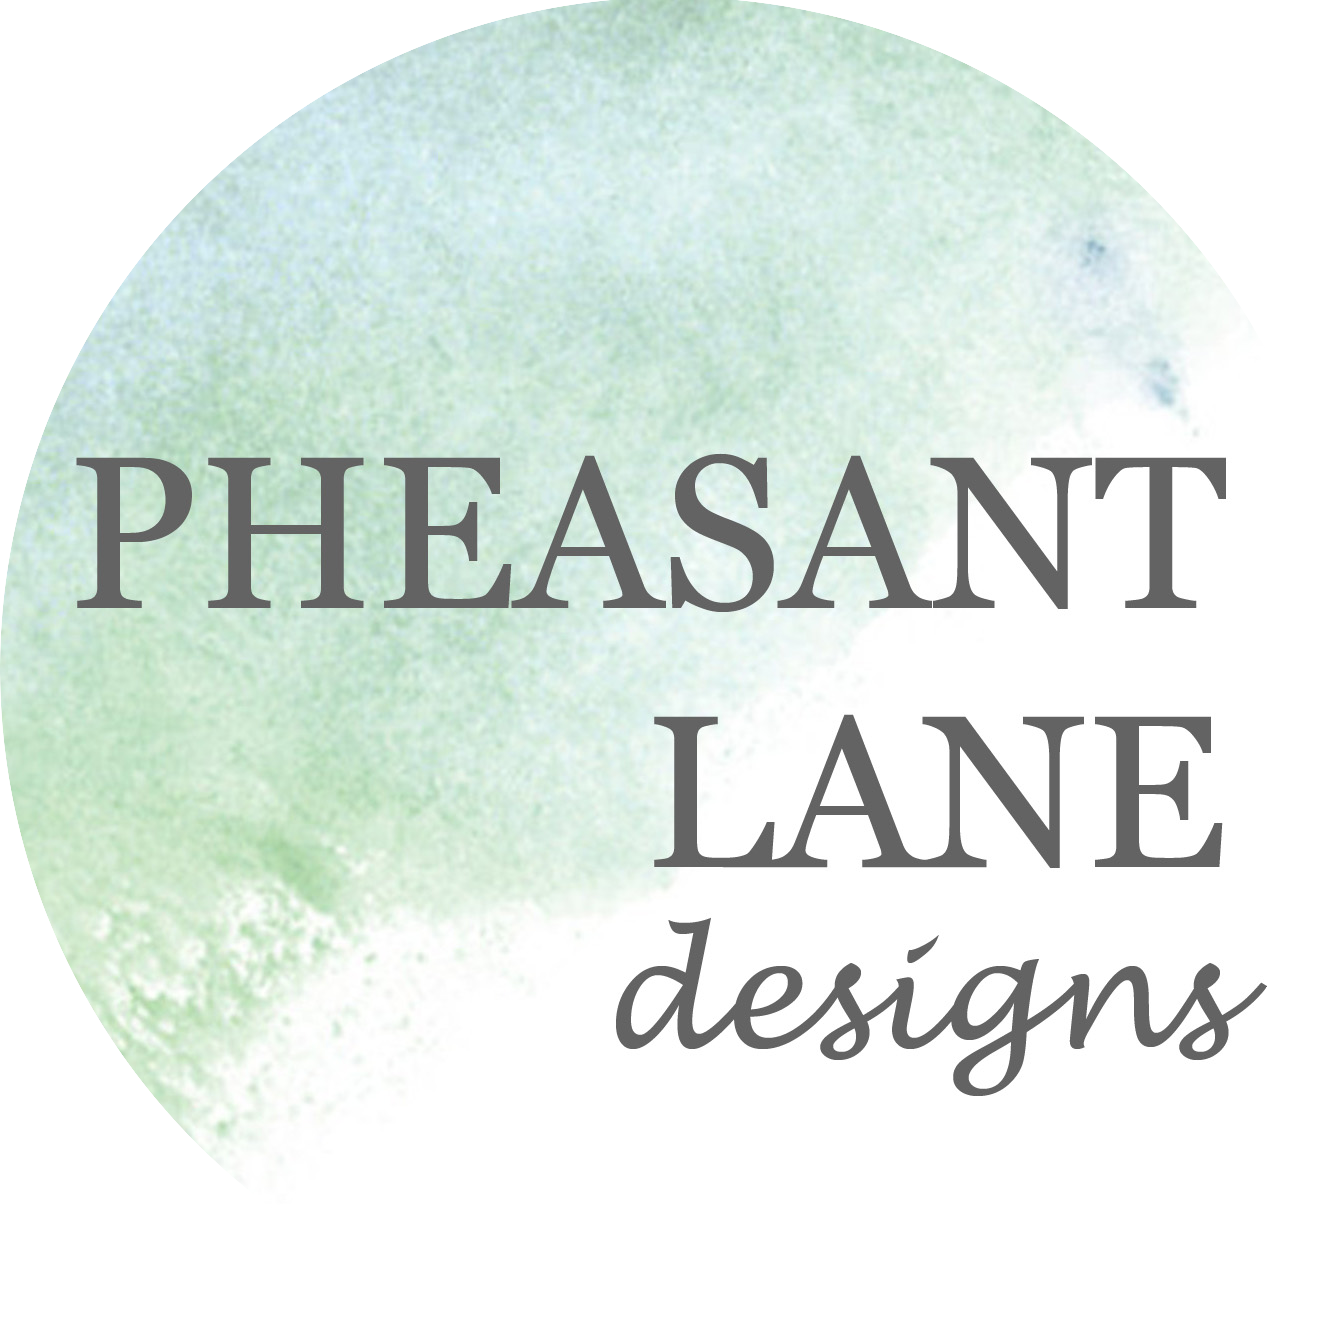 Pheasant Lane Designs